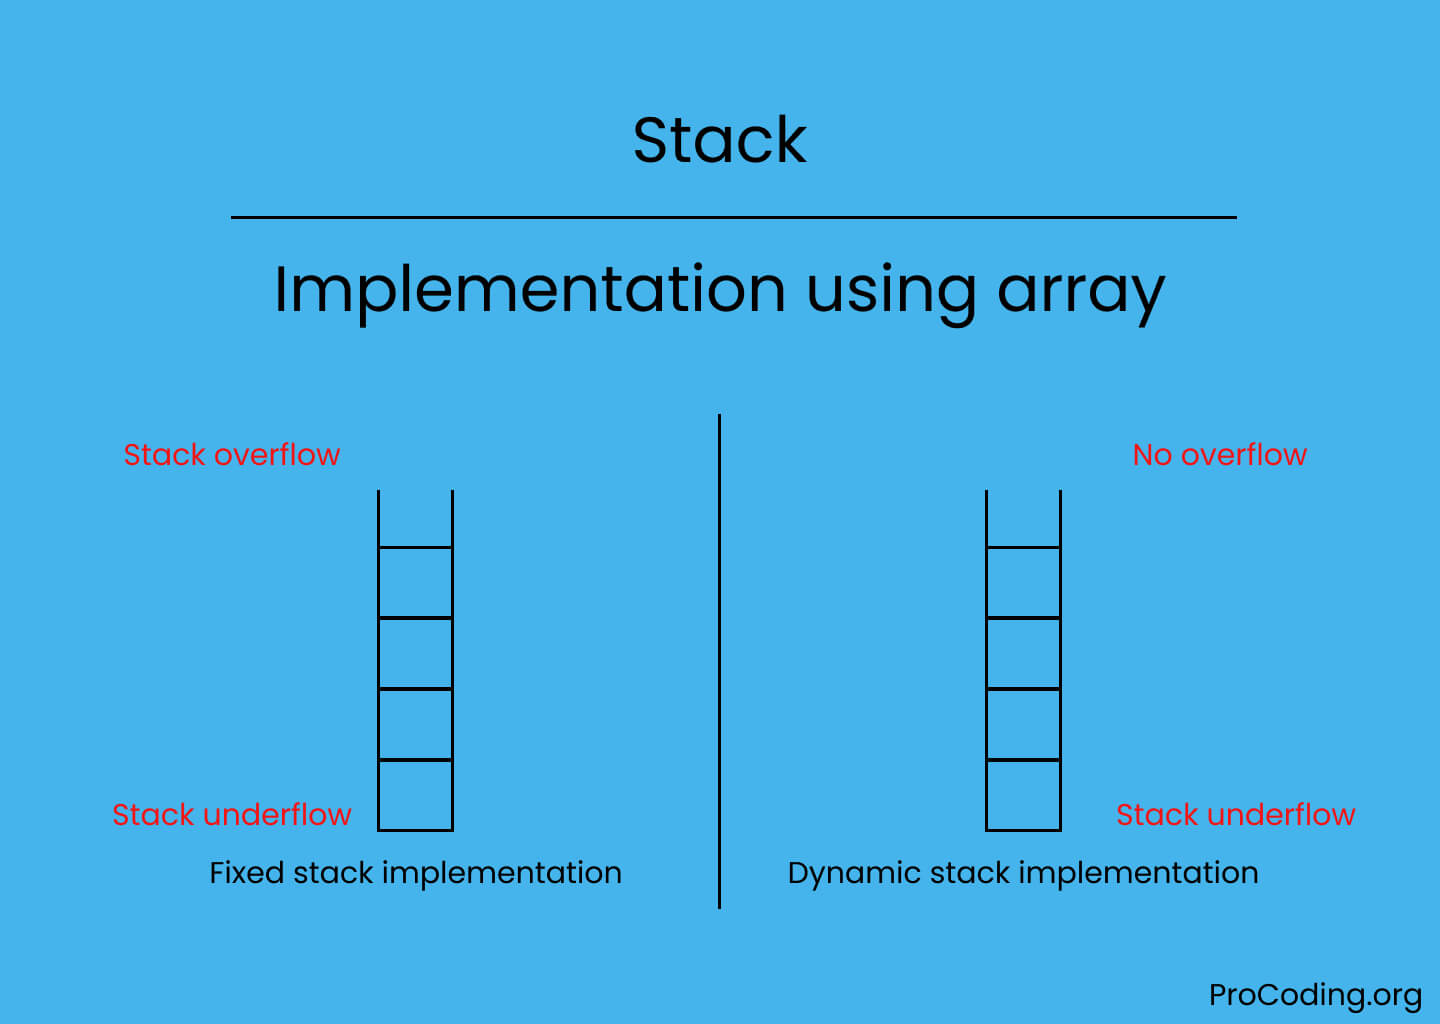 Implementation of stack using array